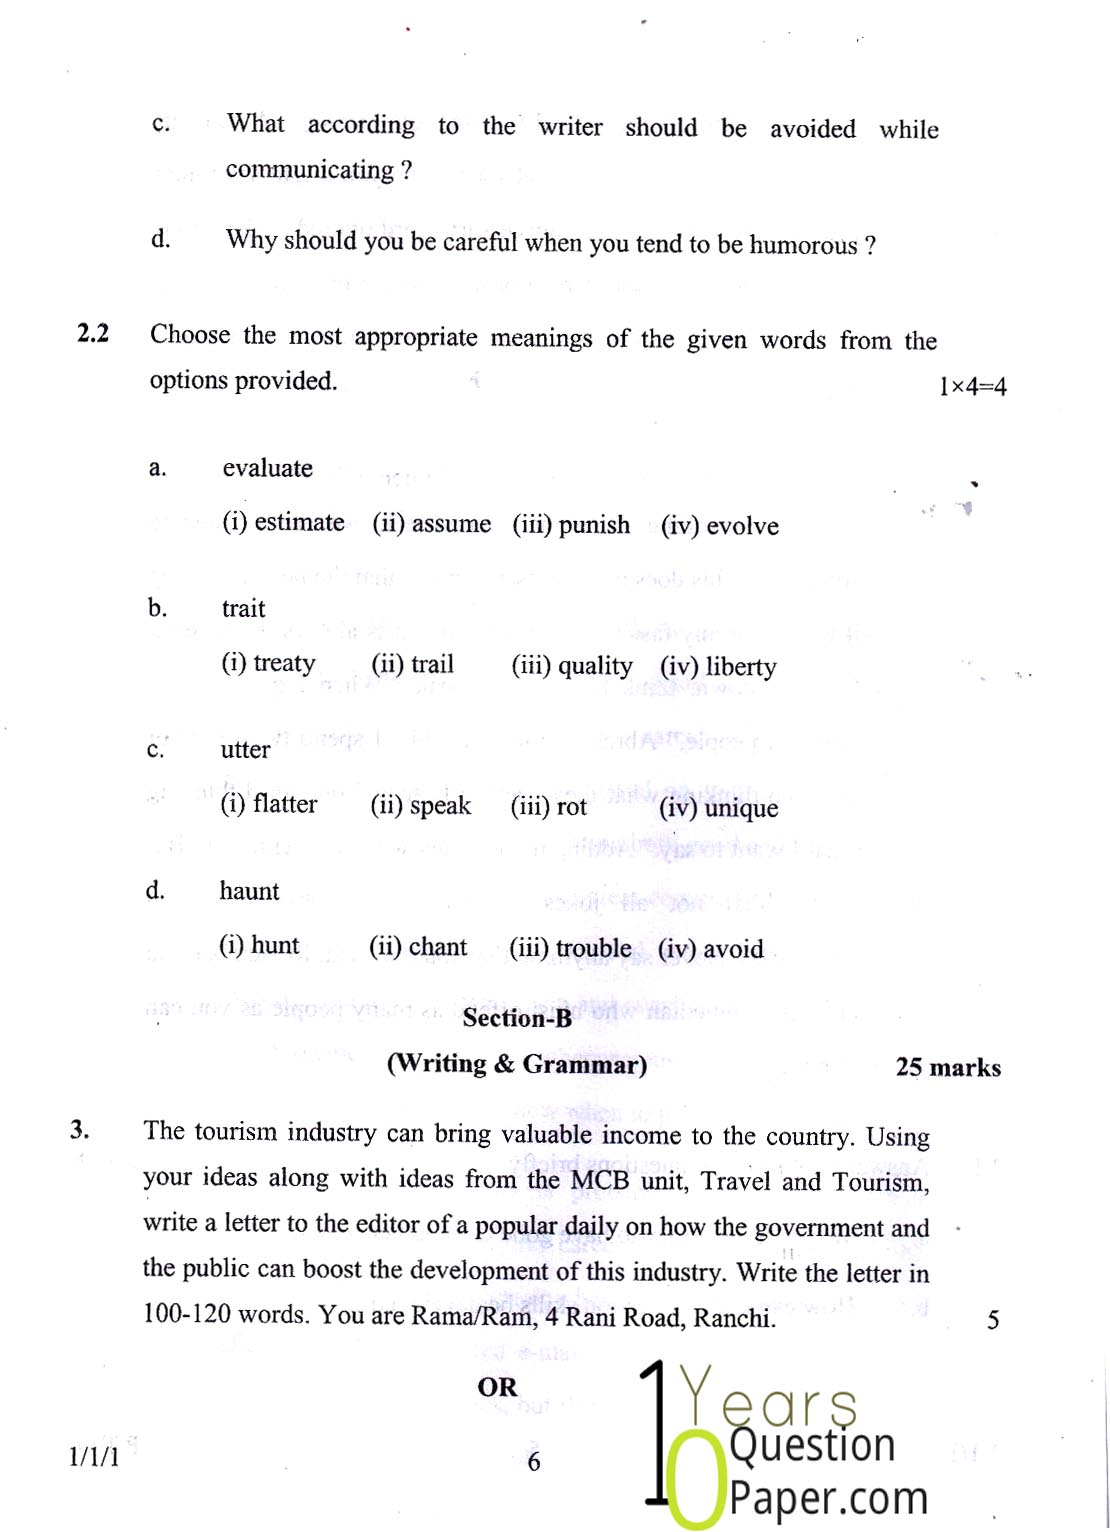 cbse class 10th 2015 English question paper